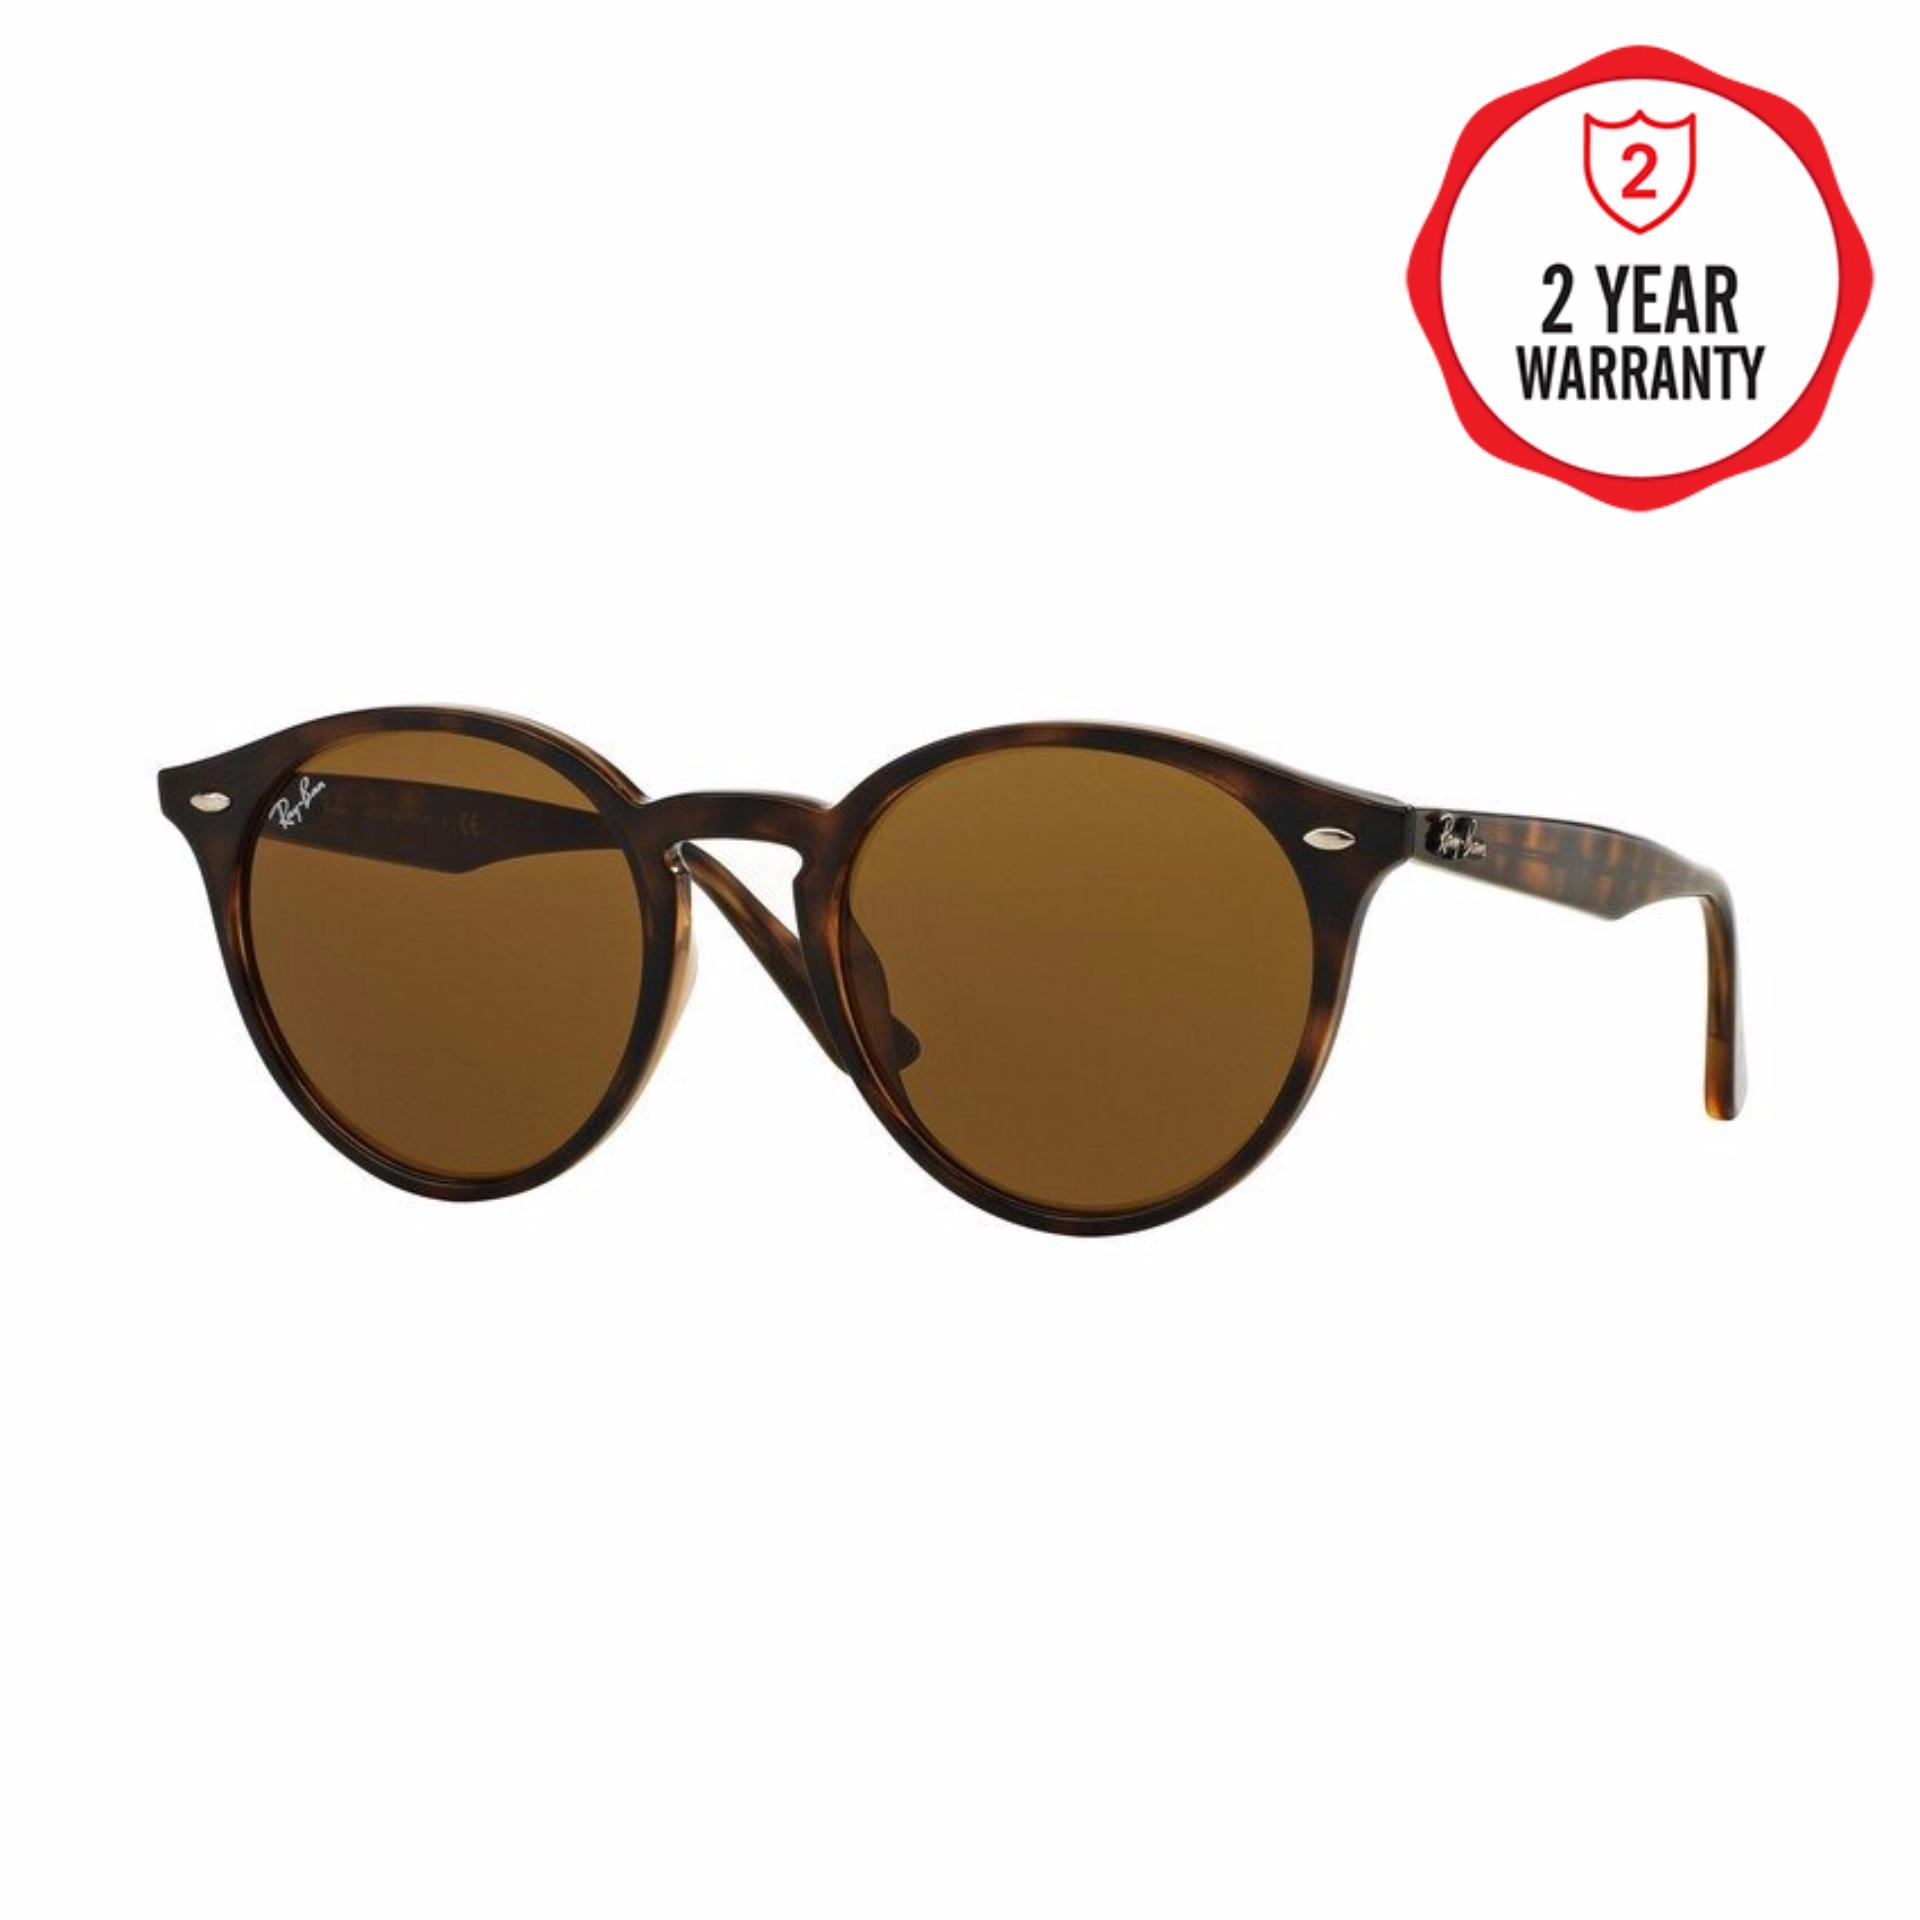 Ray Ban Products for the Best Price in Malaysia 8786274f8d